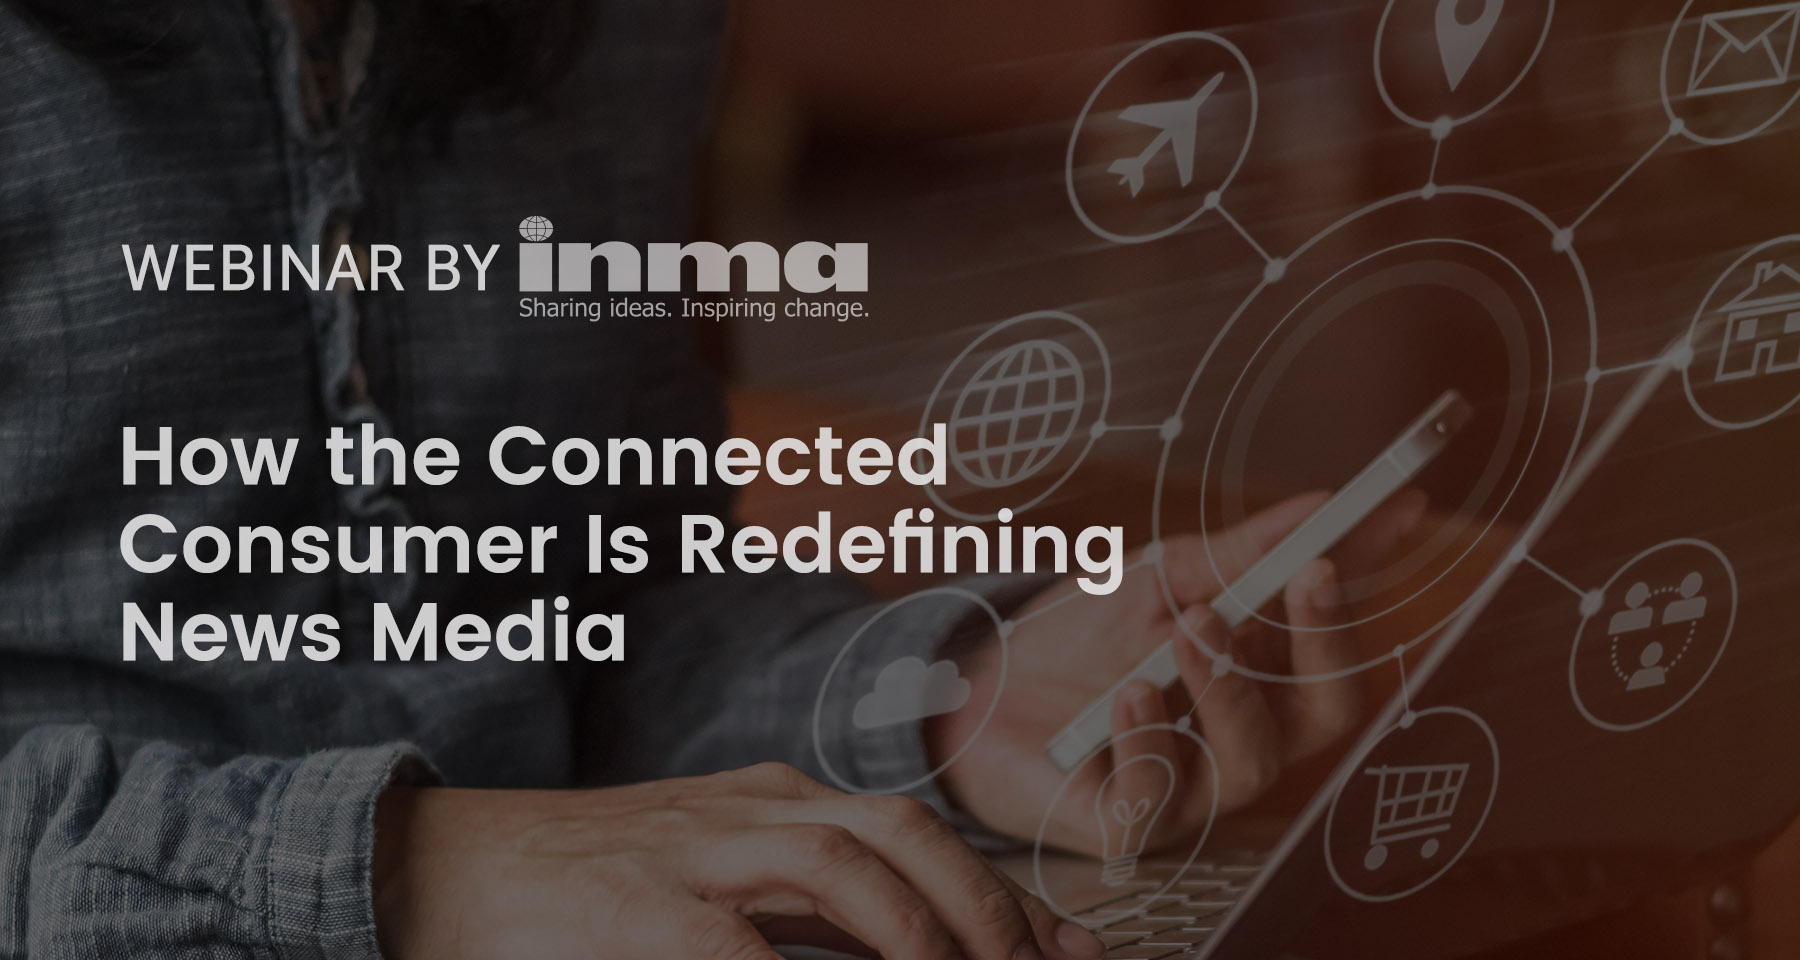 Upcoming INMA Webinar: How the connected consumer is redefining news media